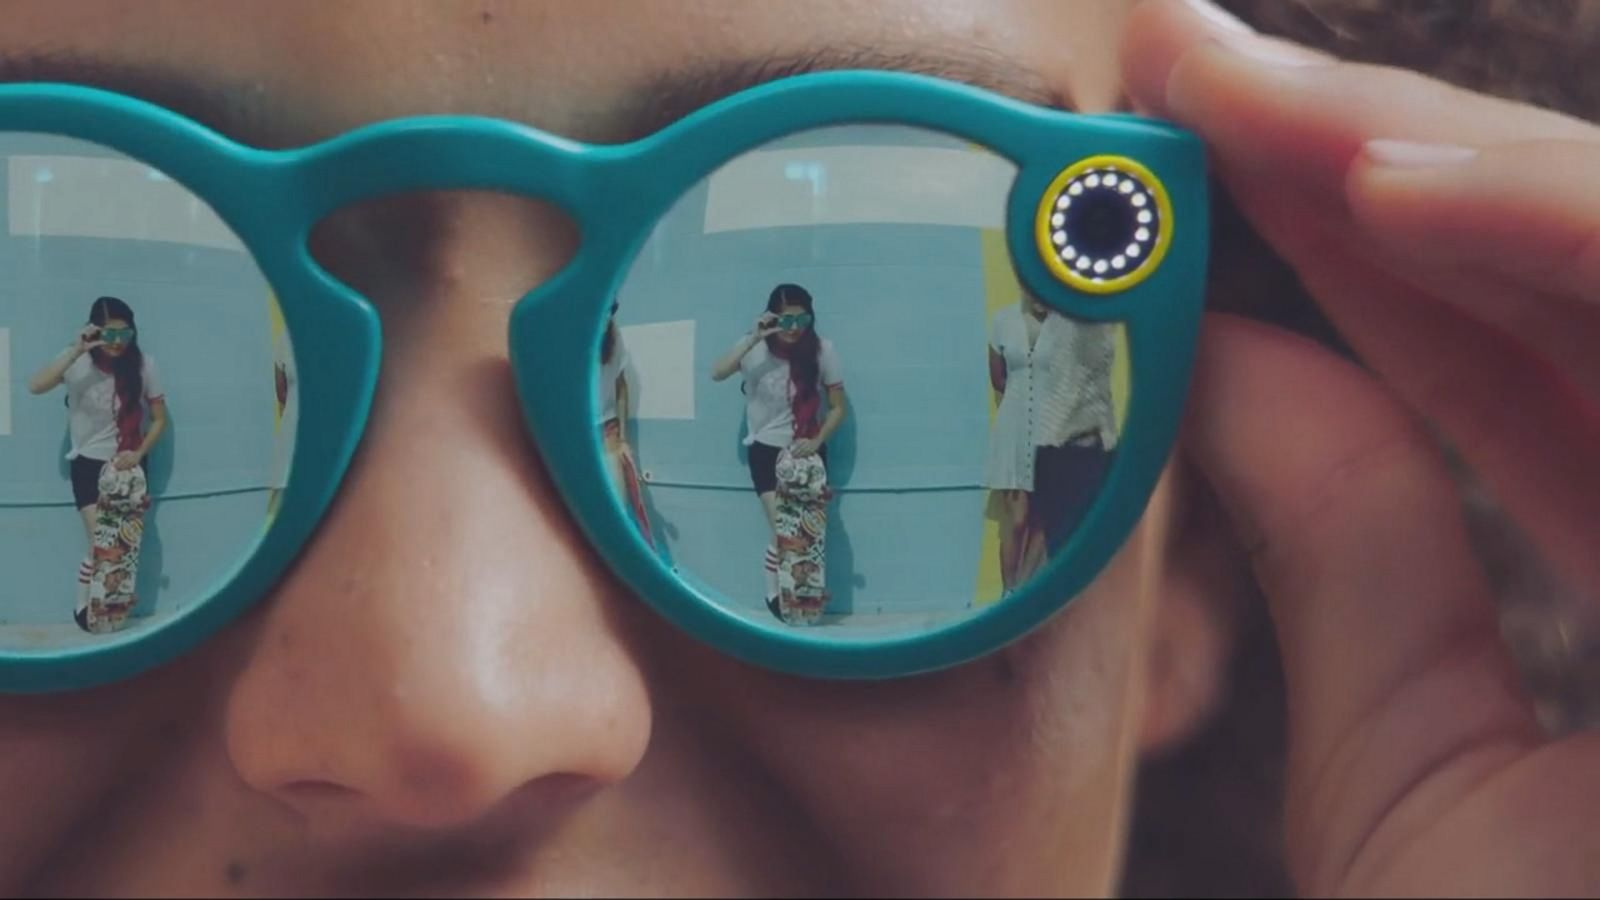 VIDEO: Snapchat Now Offering Video Recording Eyeglasses